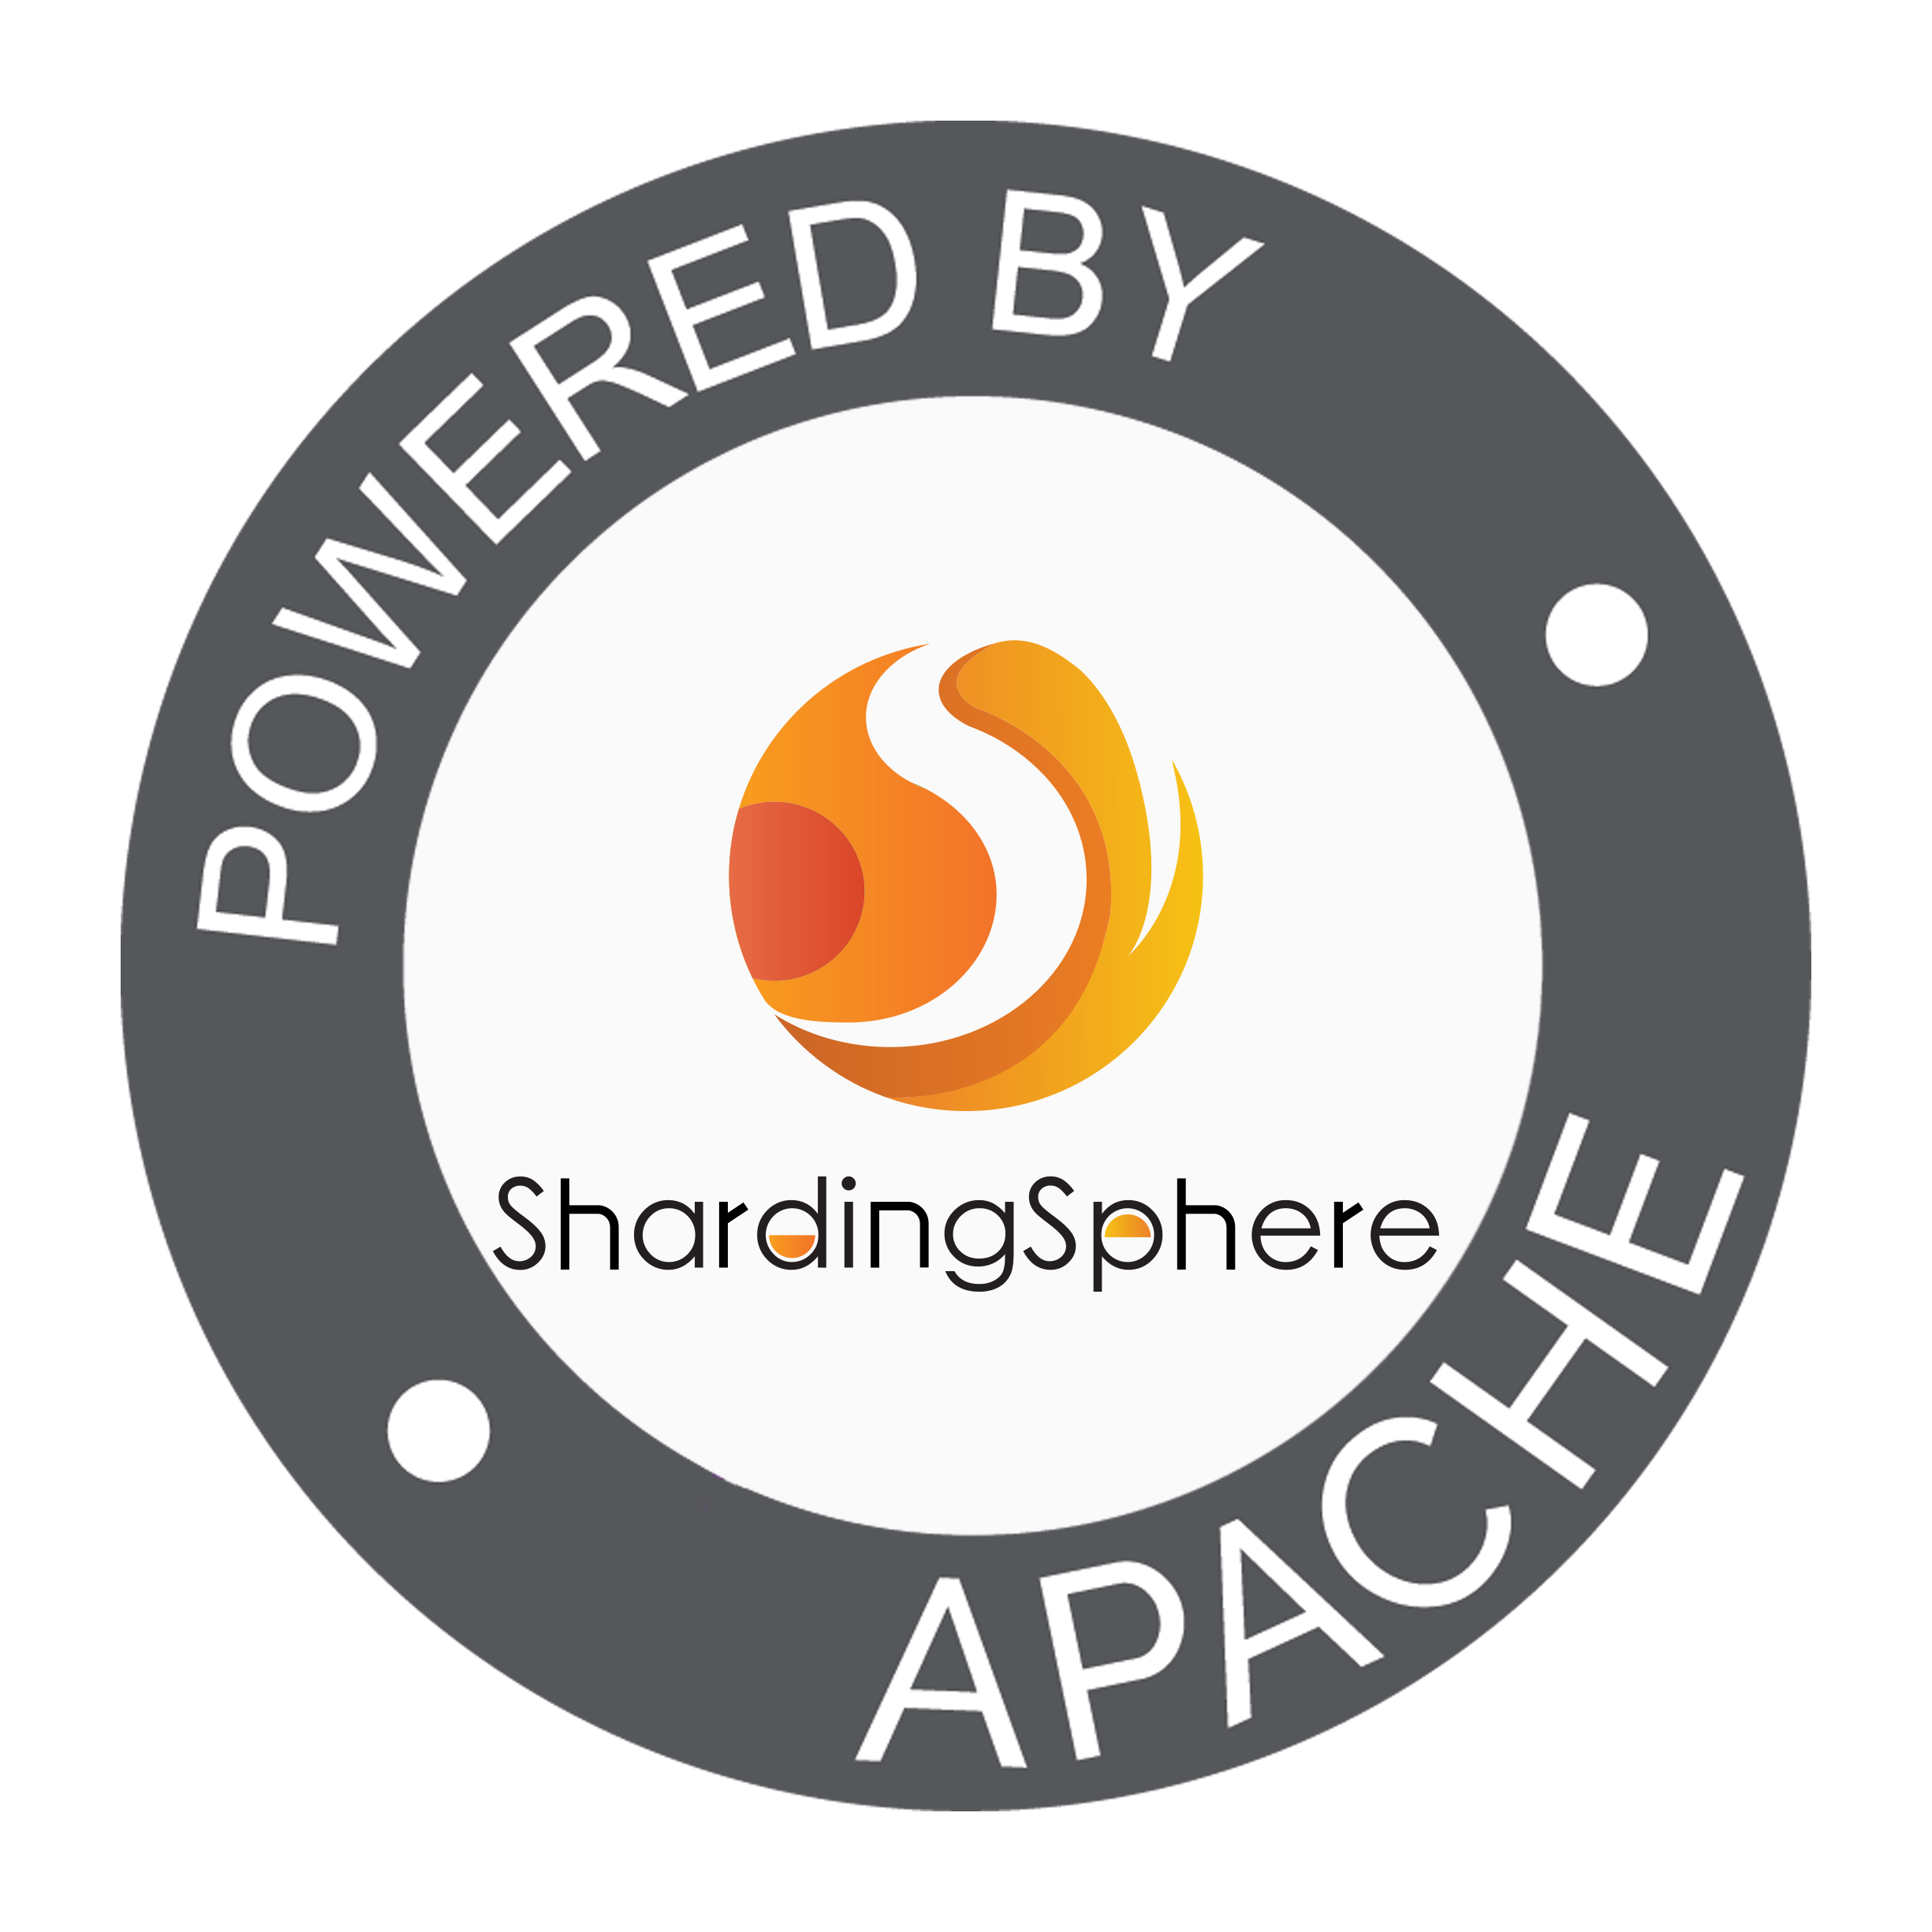 Powered By ShardingSphere